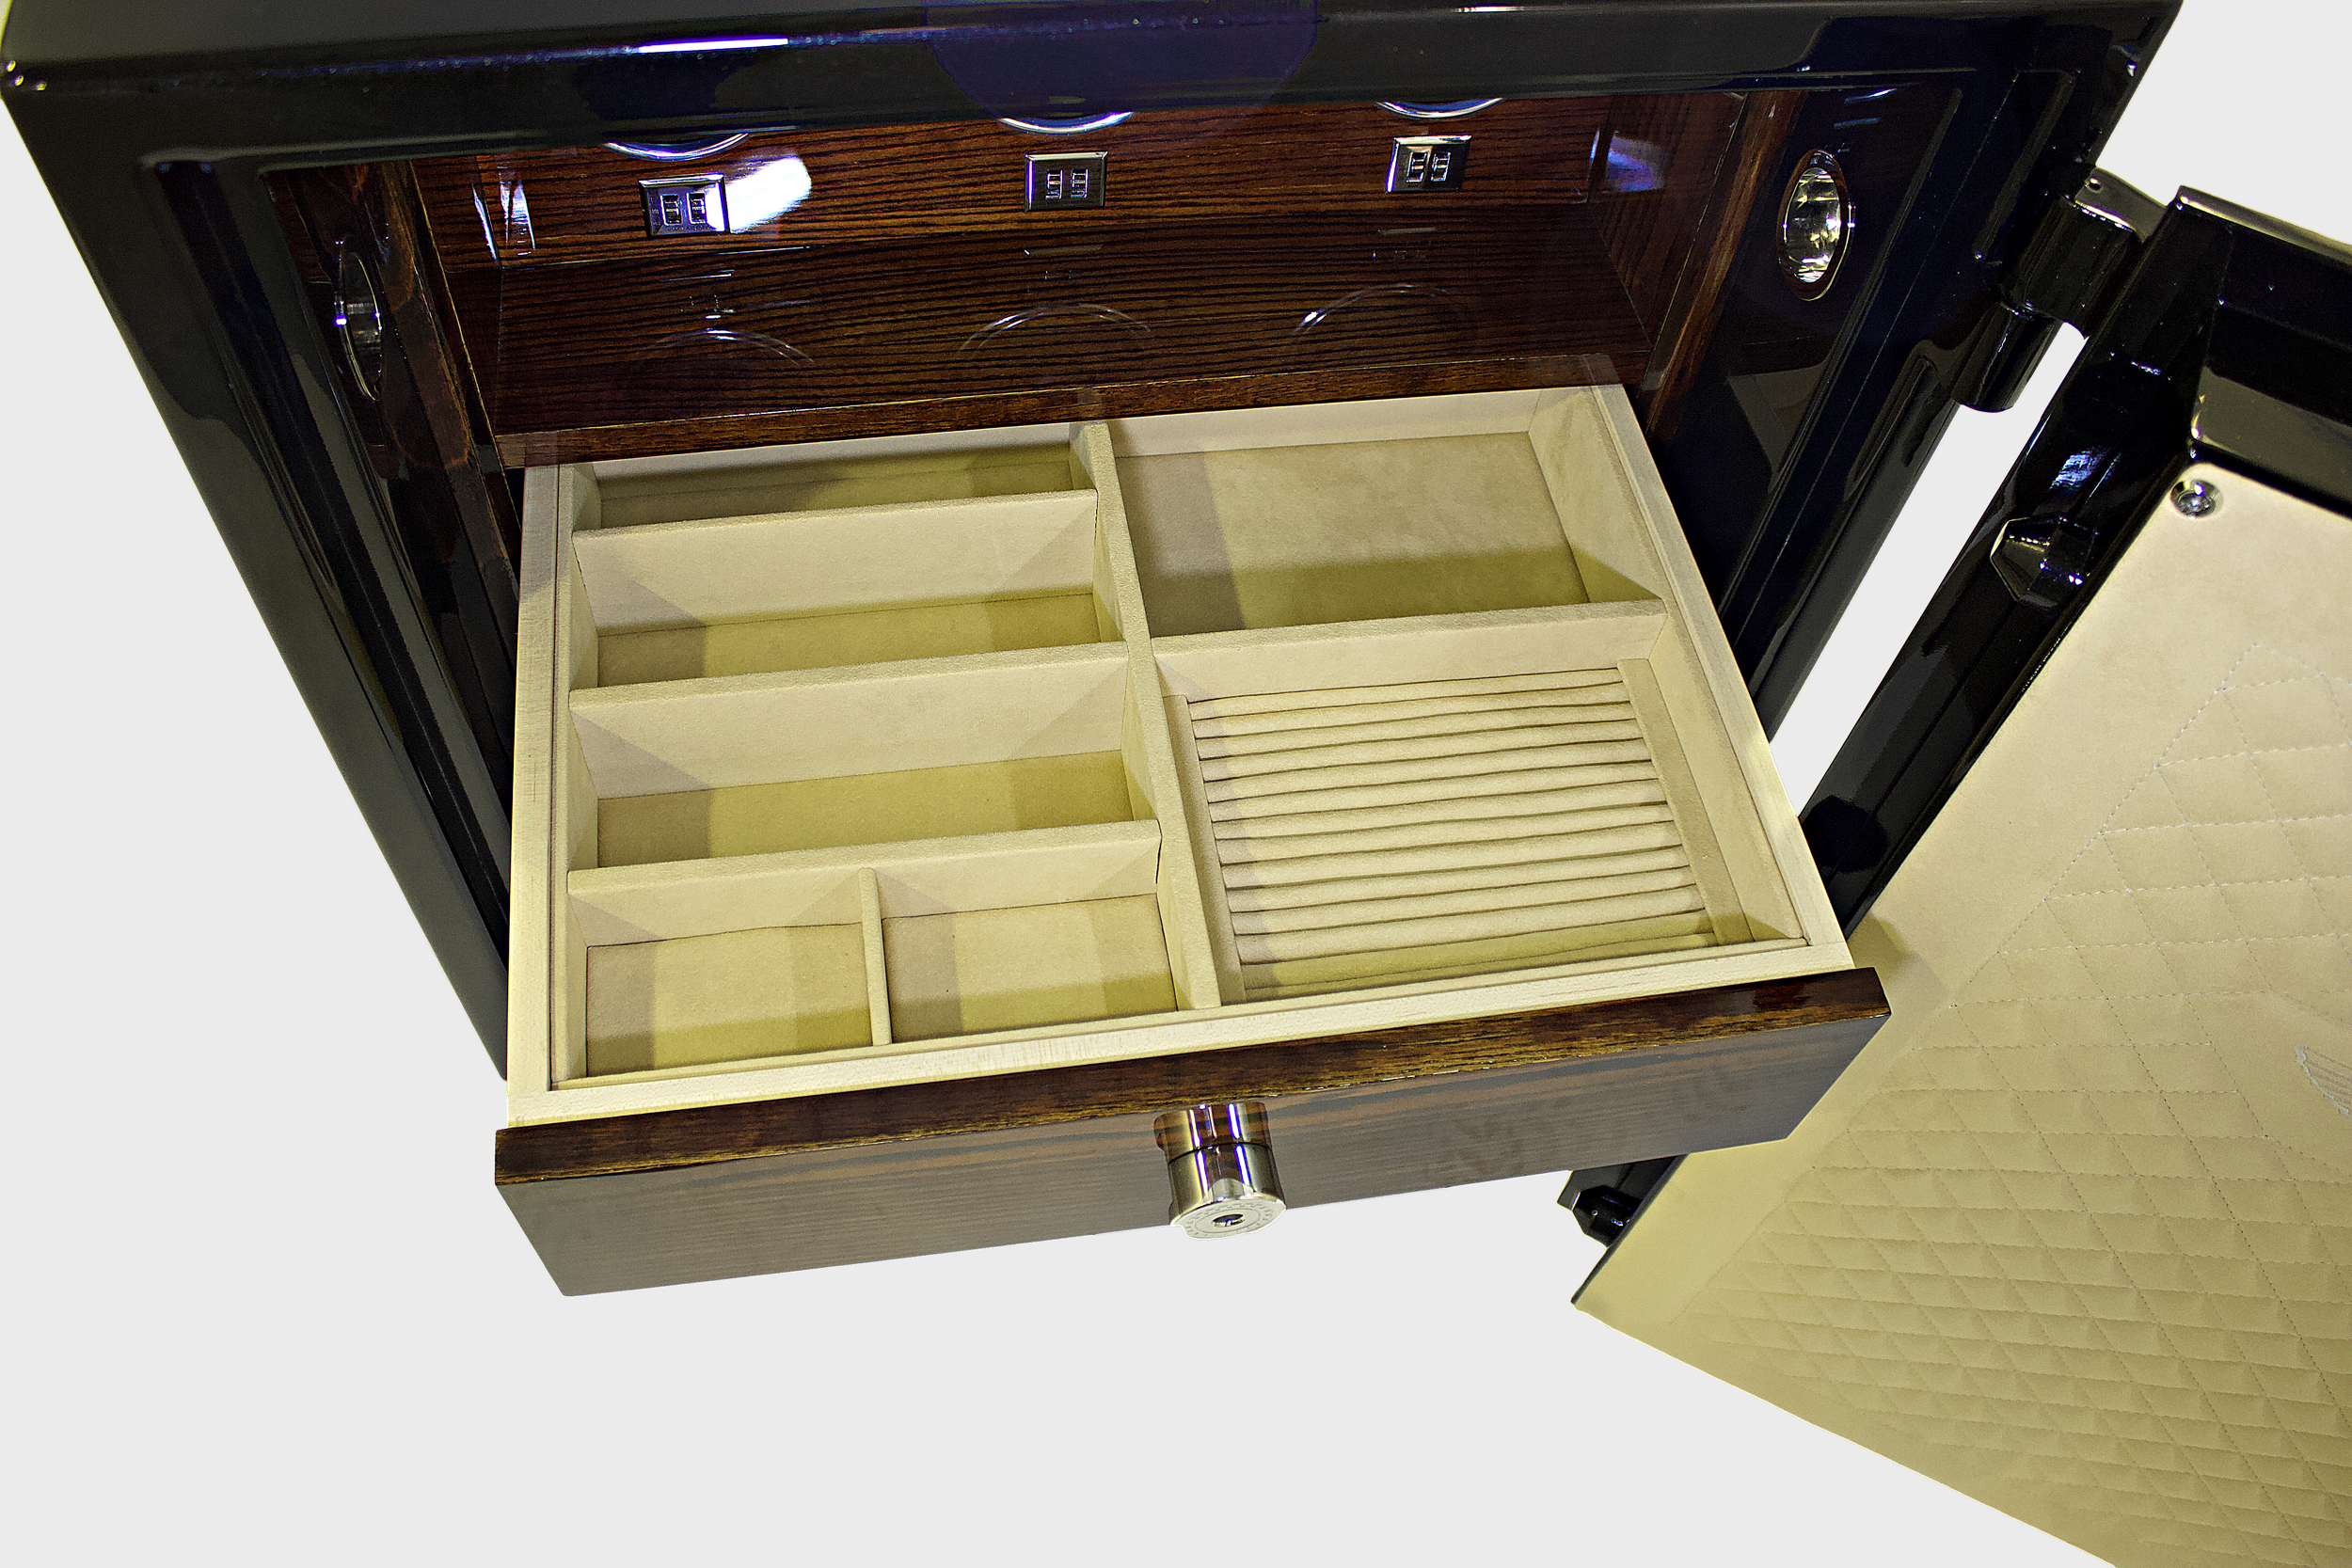 Drawers   personalised drawers & CUSHIONS  Coulson manufacture a comprehensive range of bespoke fitments for our drawers, including watch display boxes, jewellery boxes and ring trays to allow you to fully customise the interior of your safe.